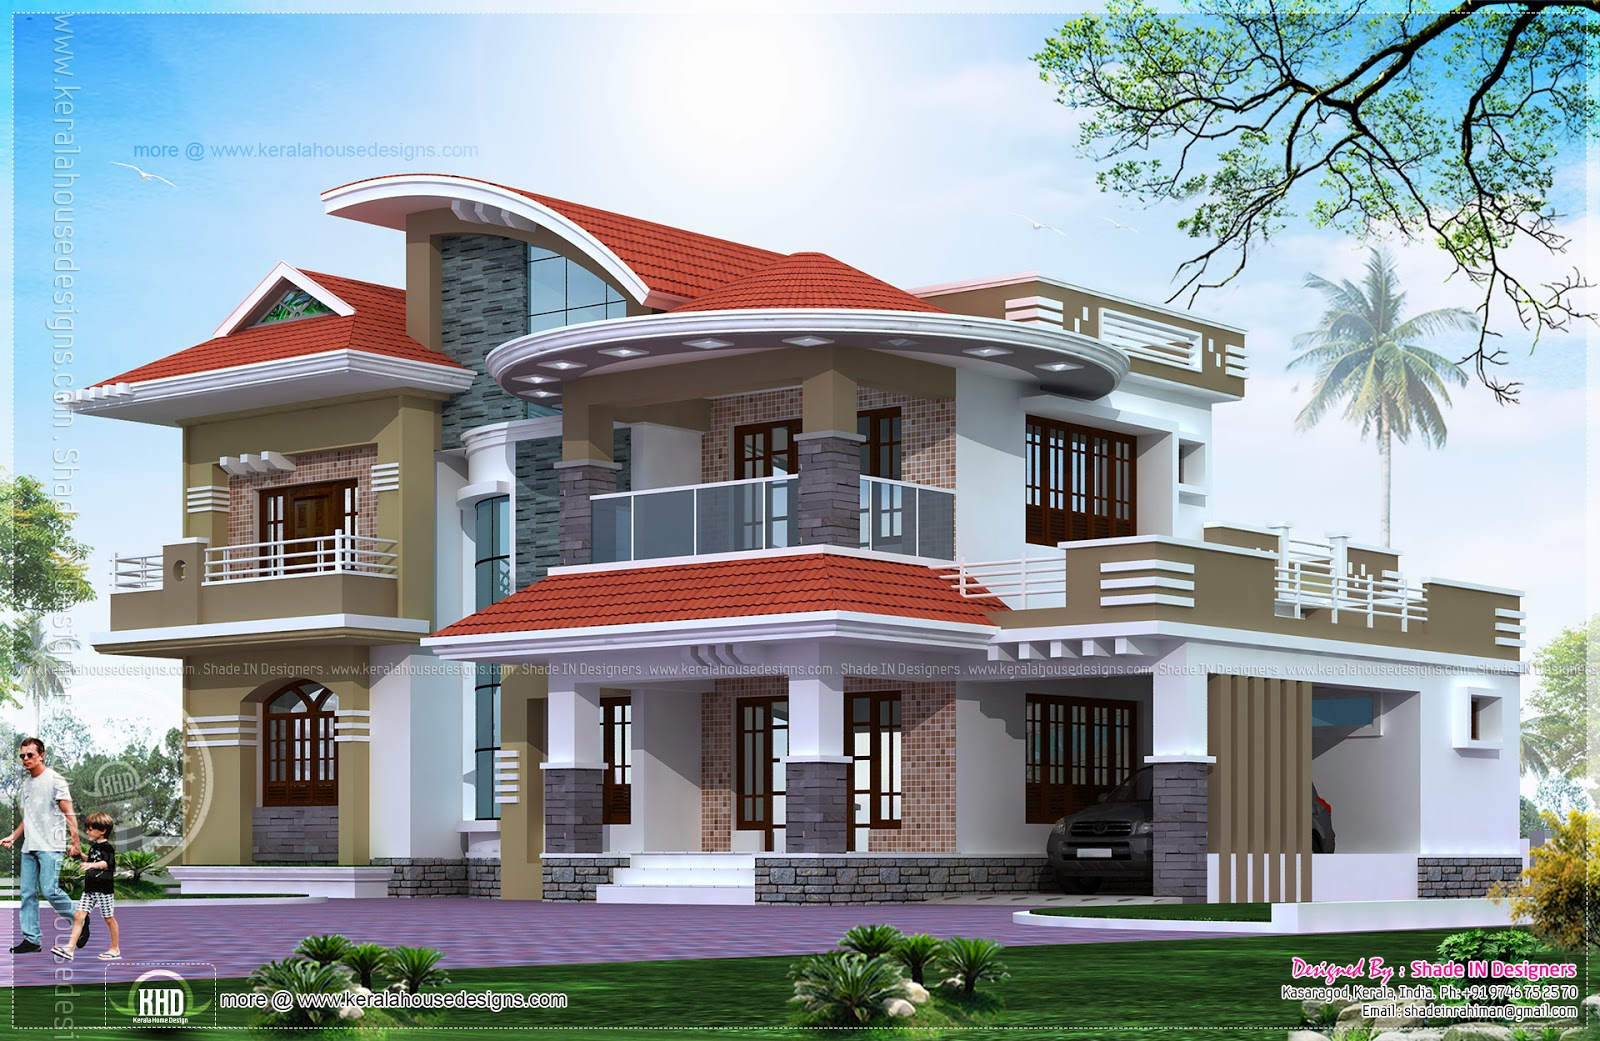 5 bedroom luxury house in kasaragod kerala home design for 5 bedroom new build homes